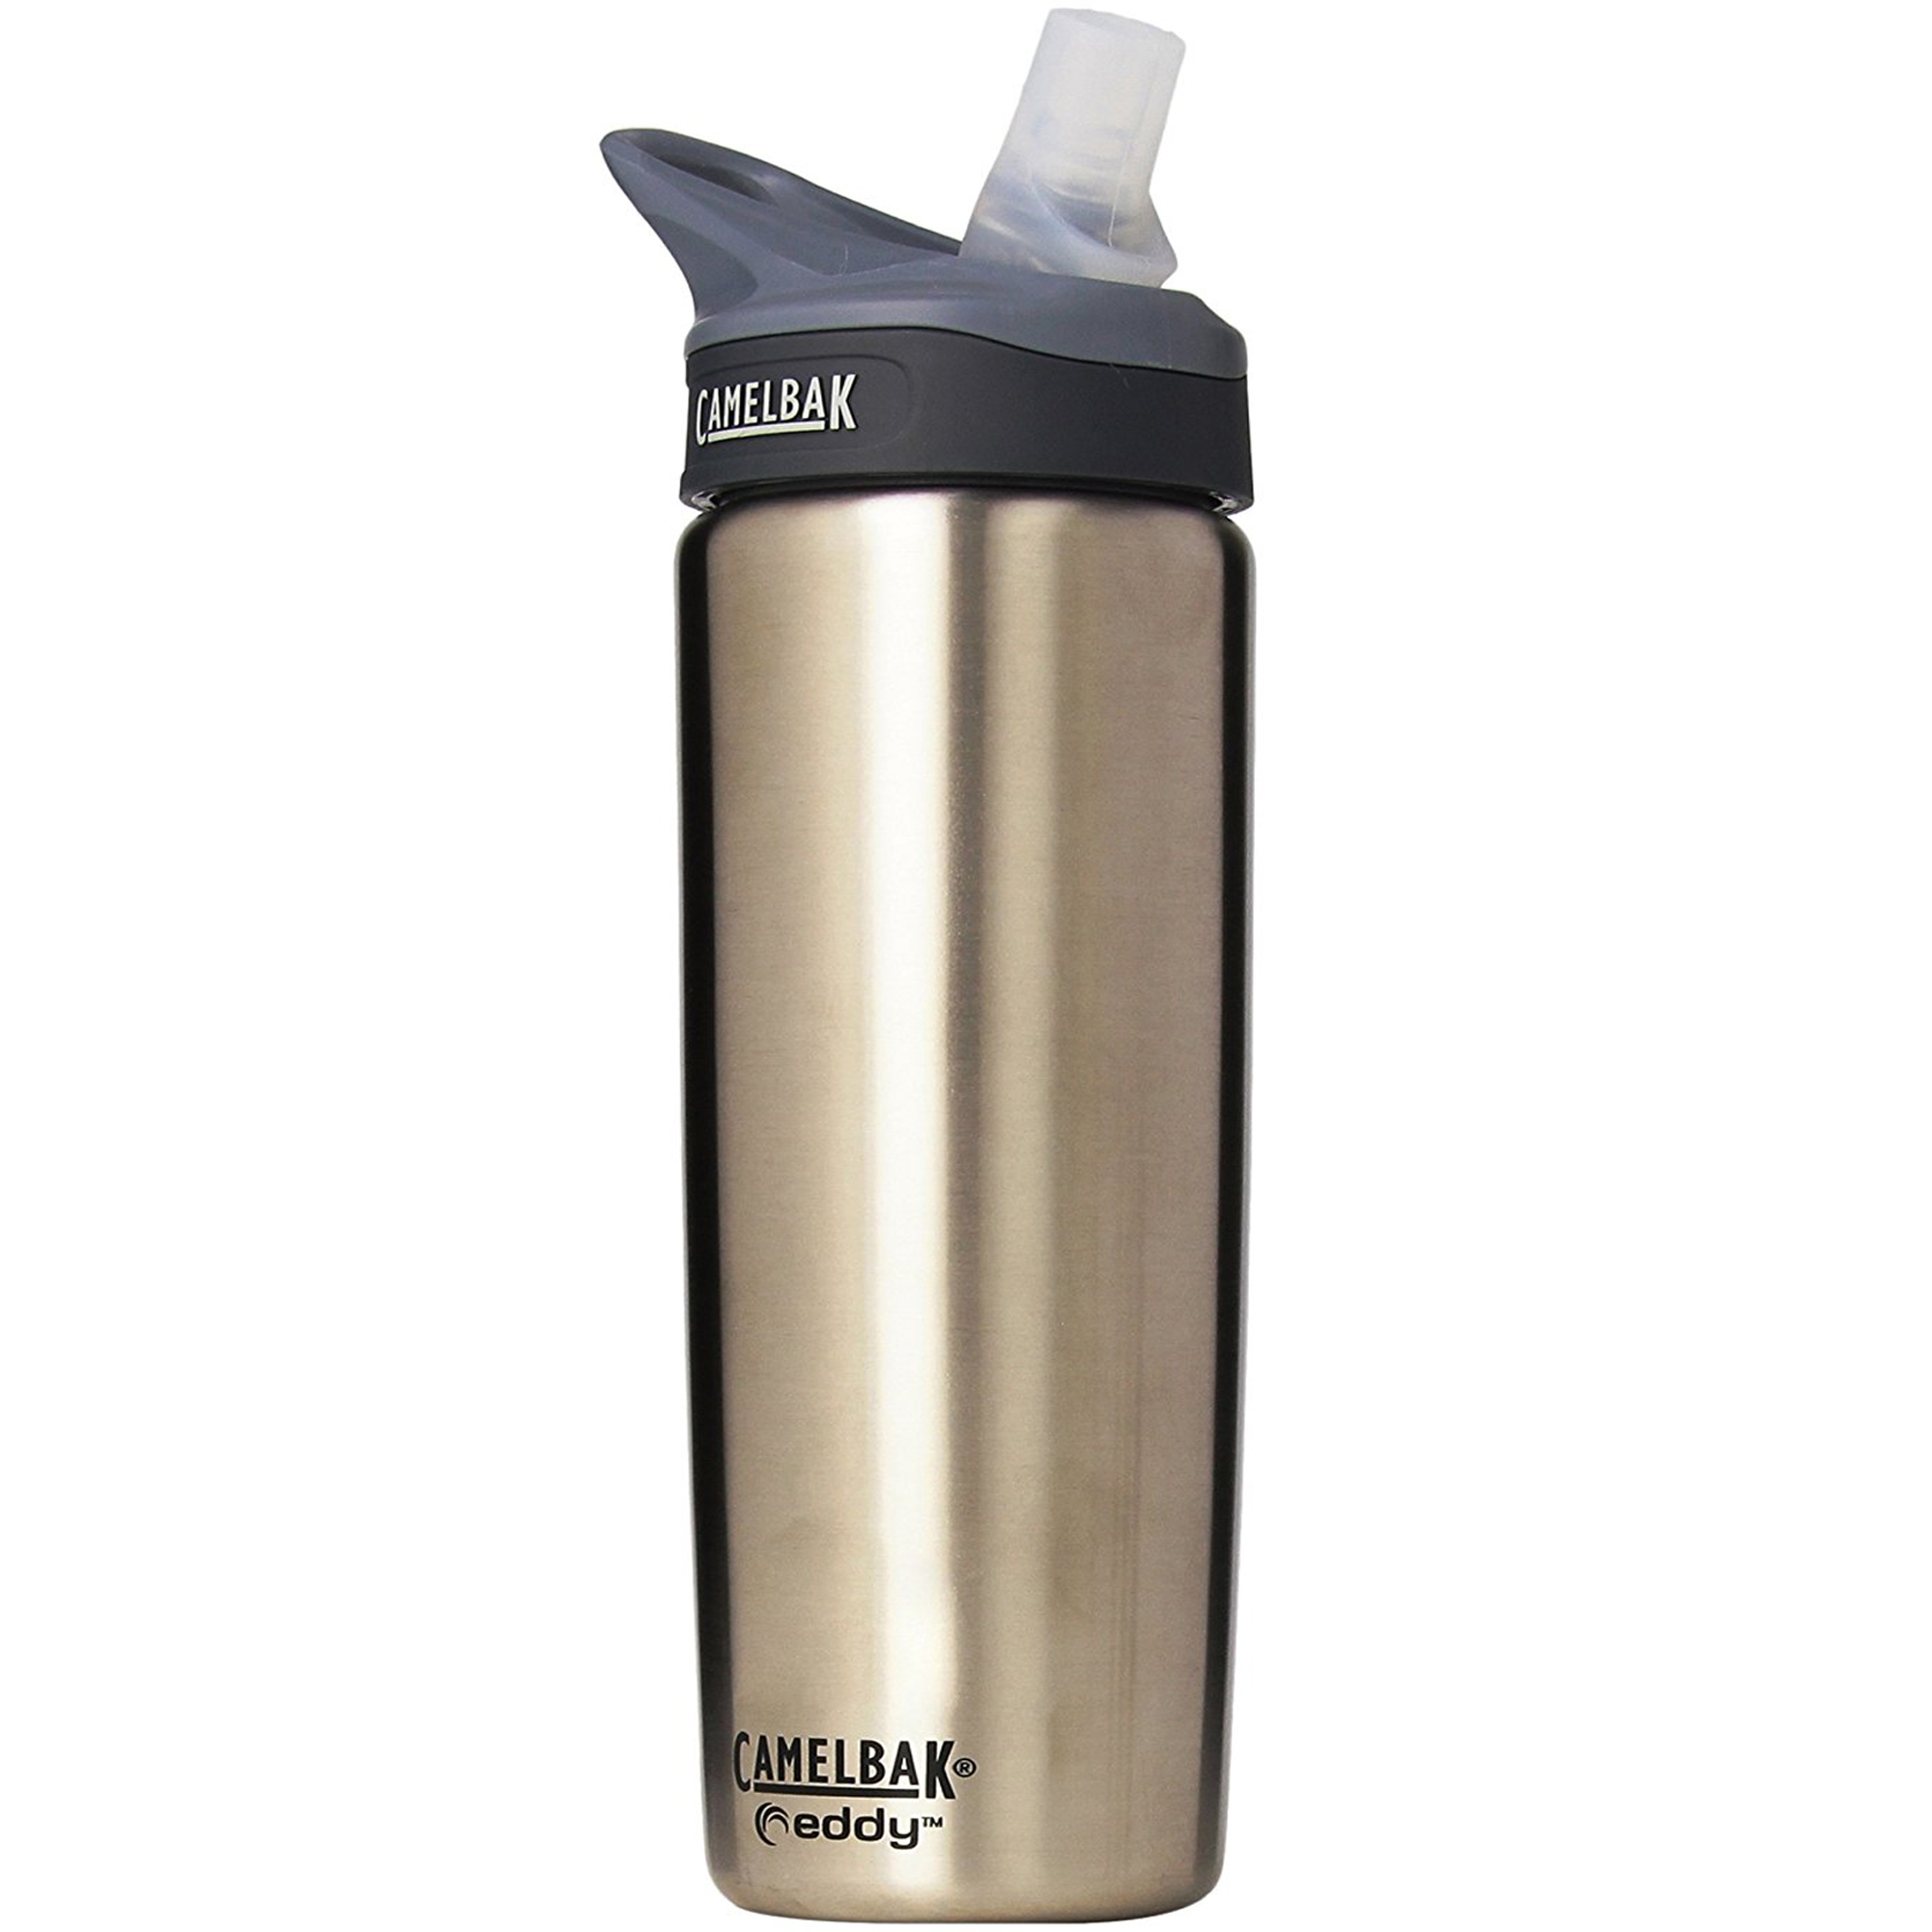 Camelbak Eddy Stainless Bottle by CamelBak